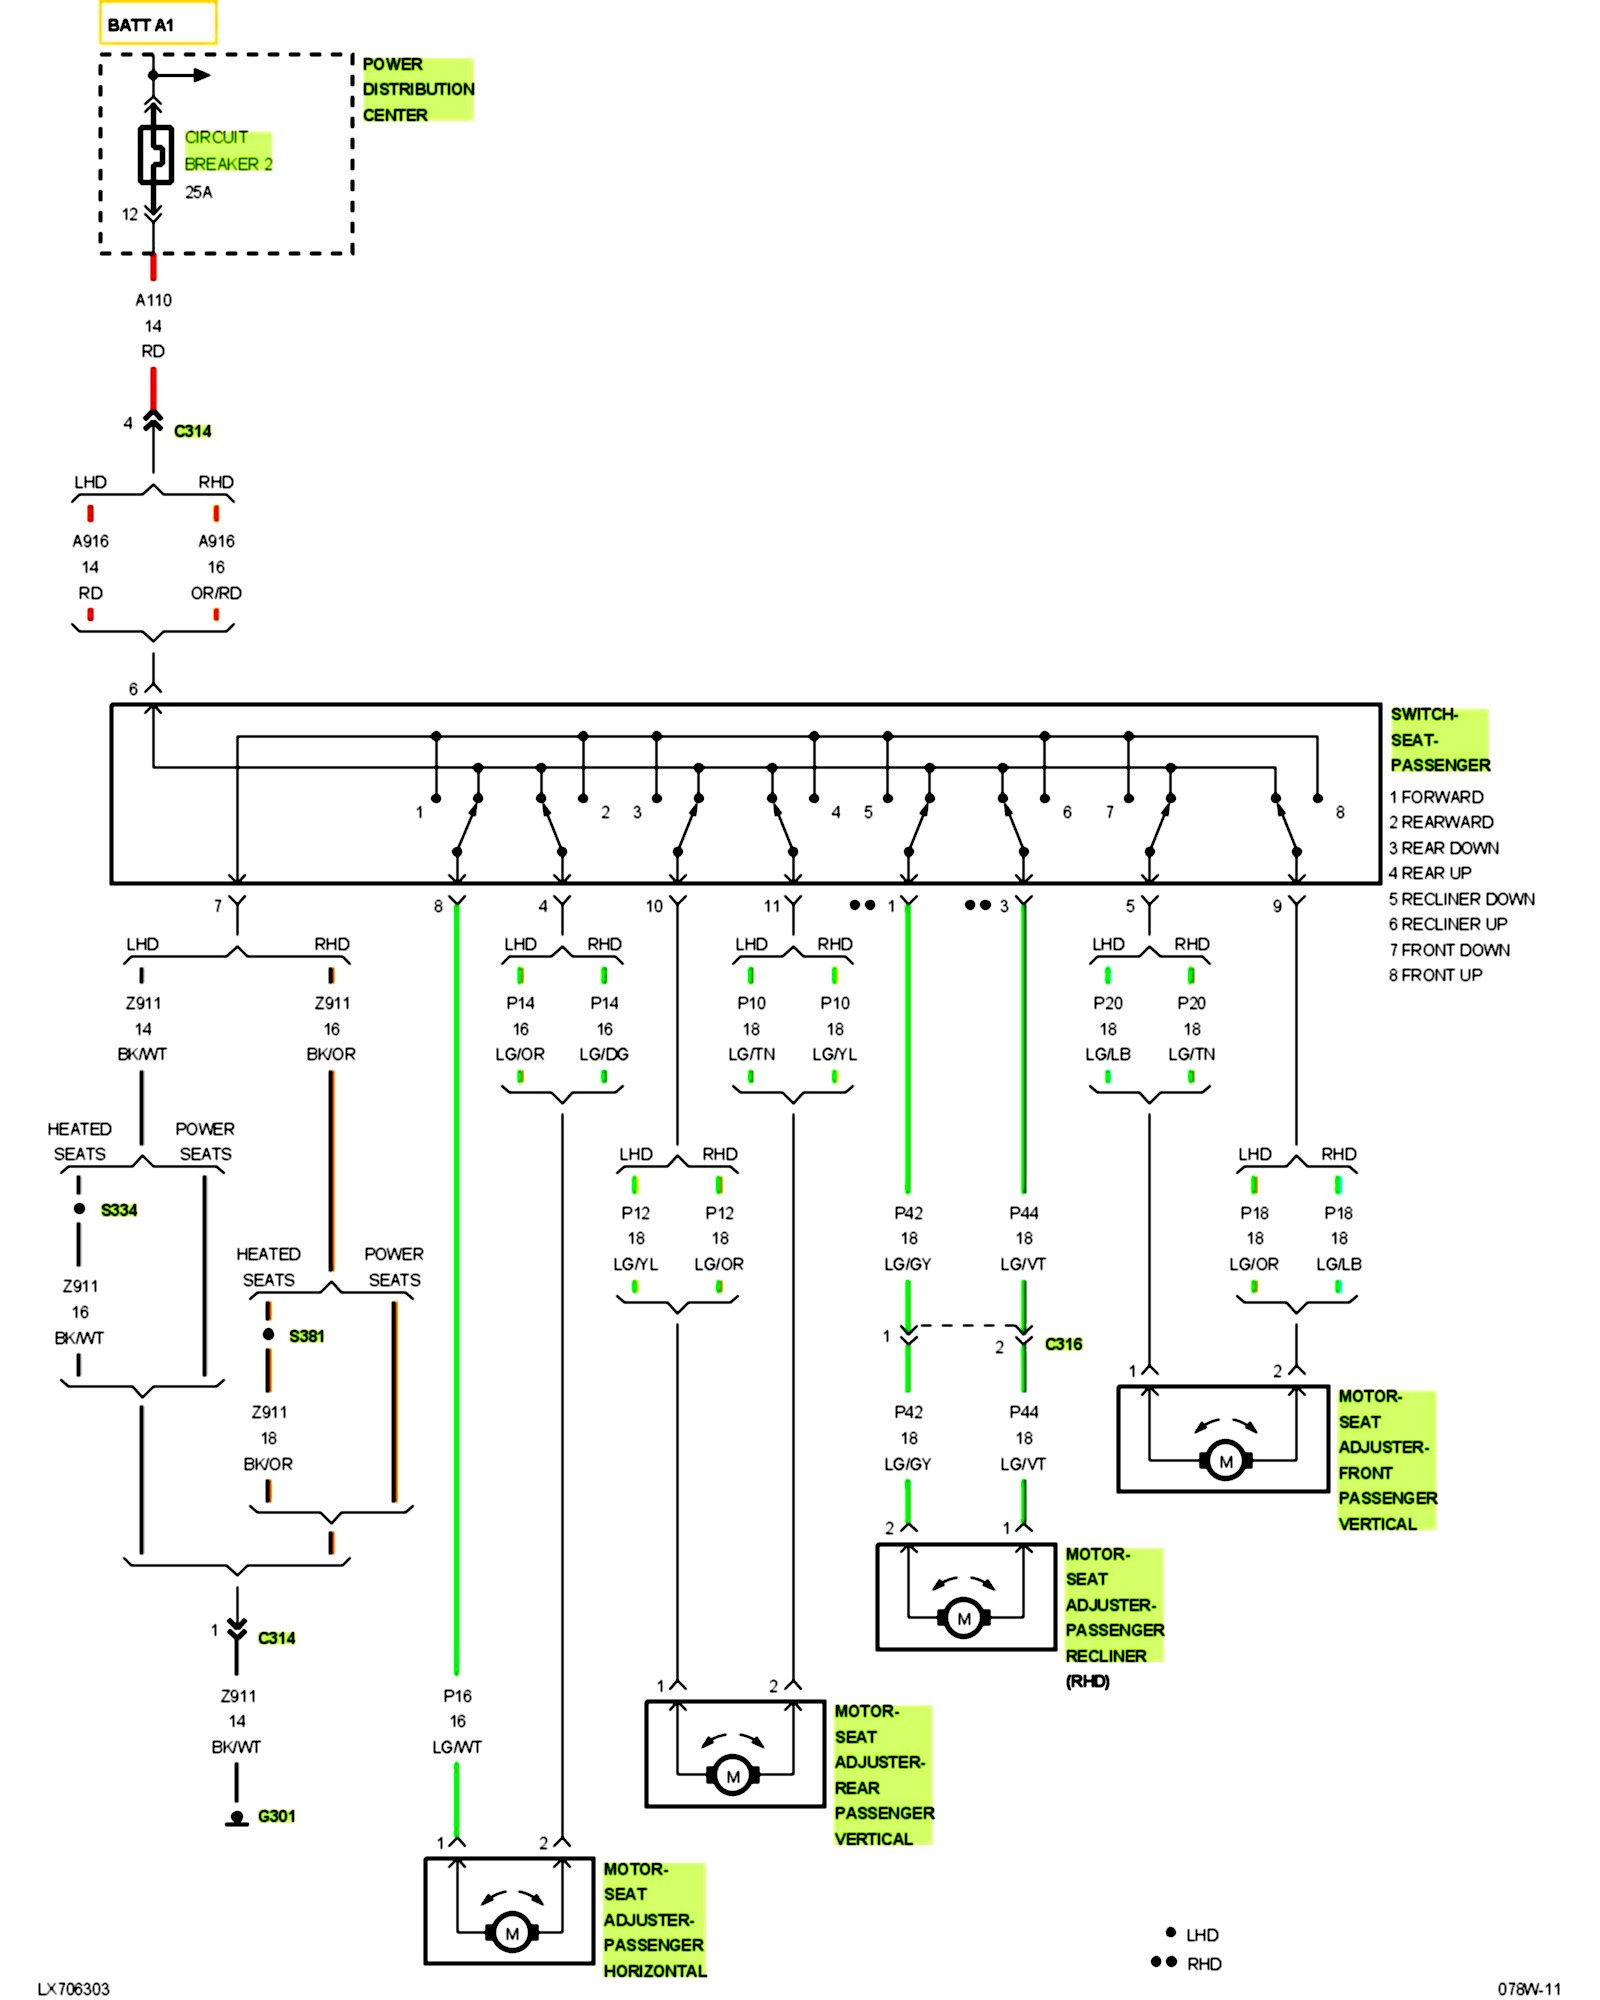 [SCHEMATICS_48IU]  08 RT wiring for SRT8 seats | Charger Forums | 1966 Chrysler 300 Power Seat Wiring Diagram |  | Charger Forums